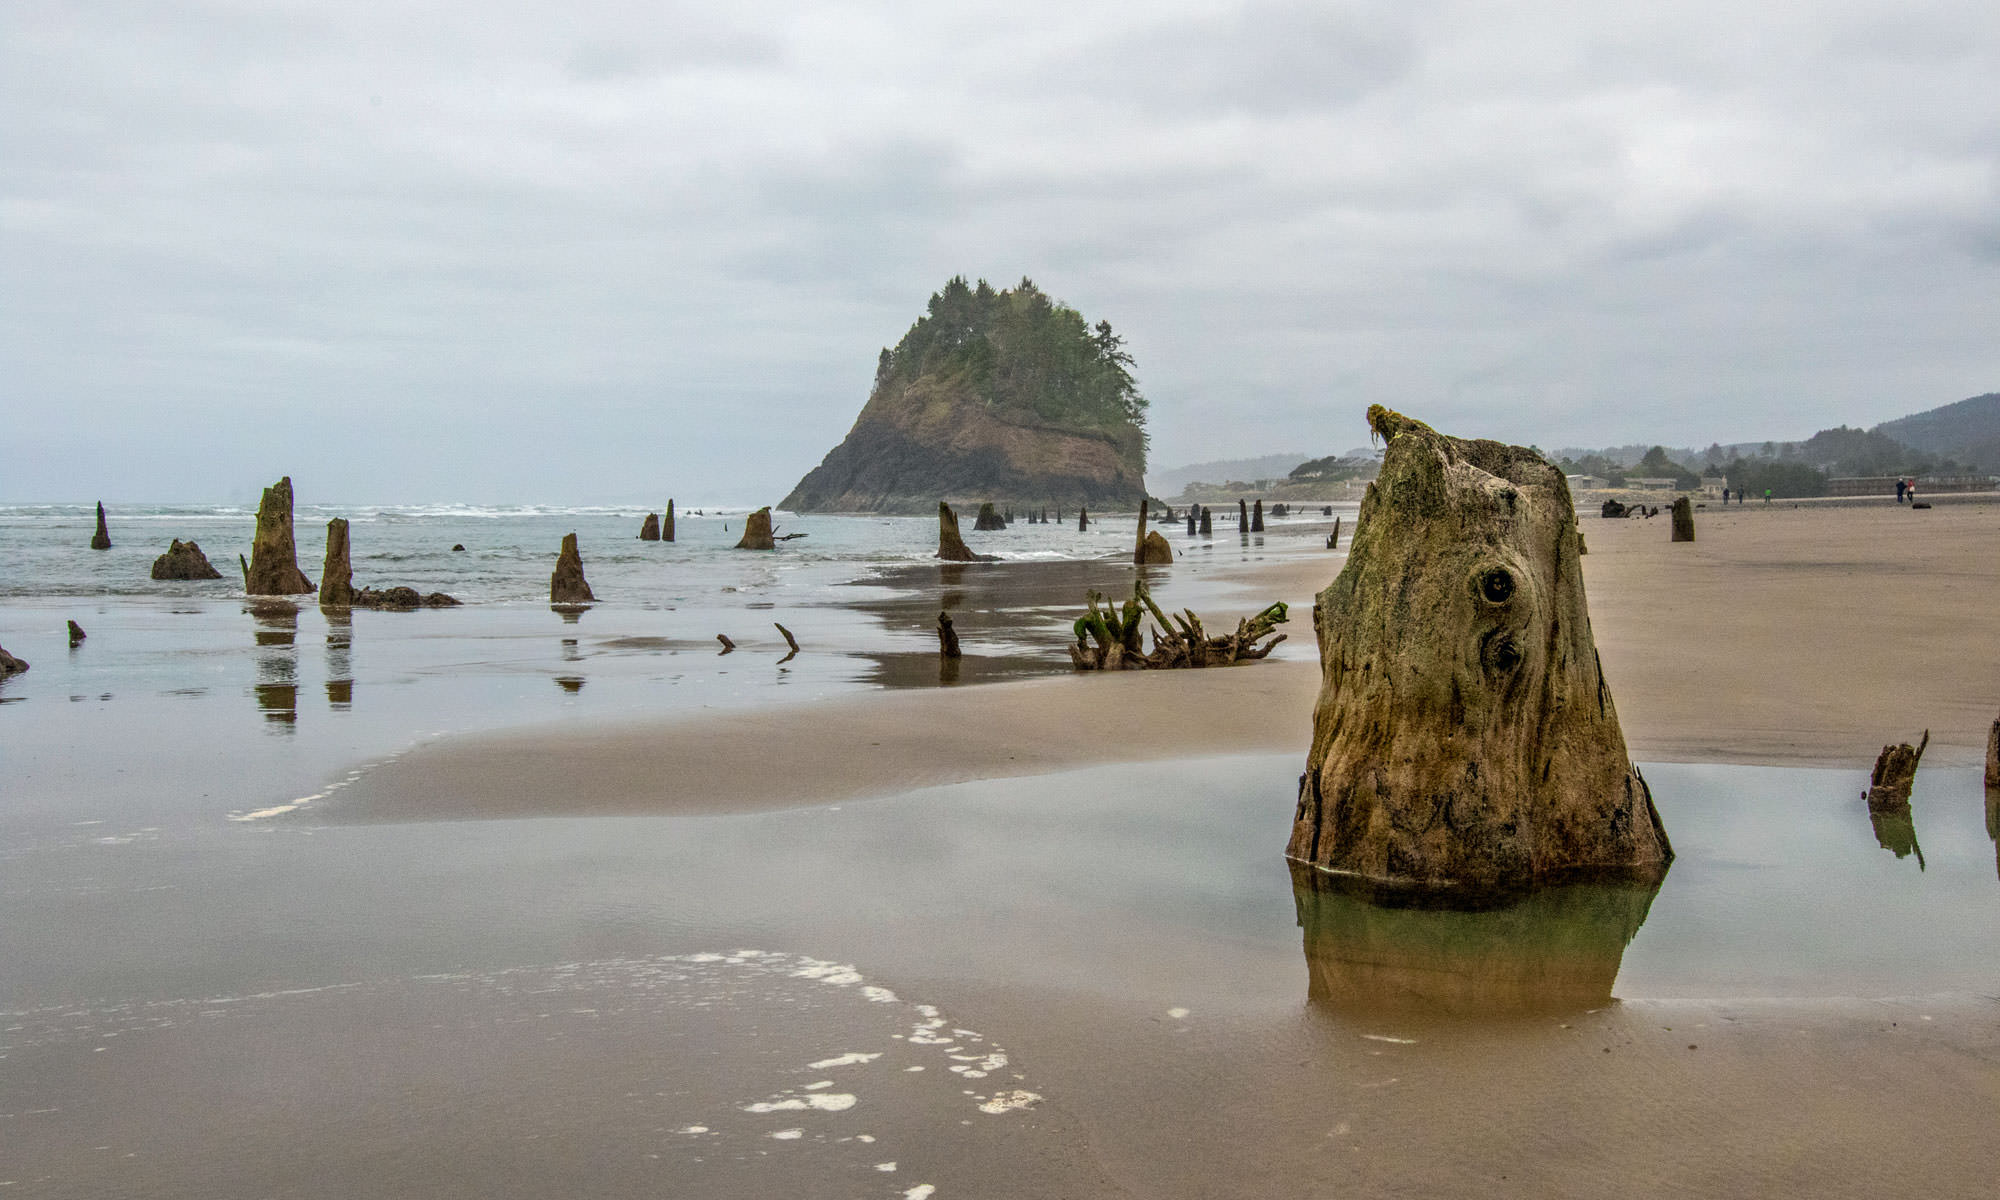 Tree stumps emerge from the shoreline at low tide, with the impressive Proposal Rock in the background.